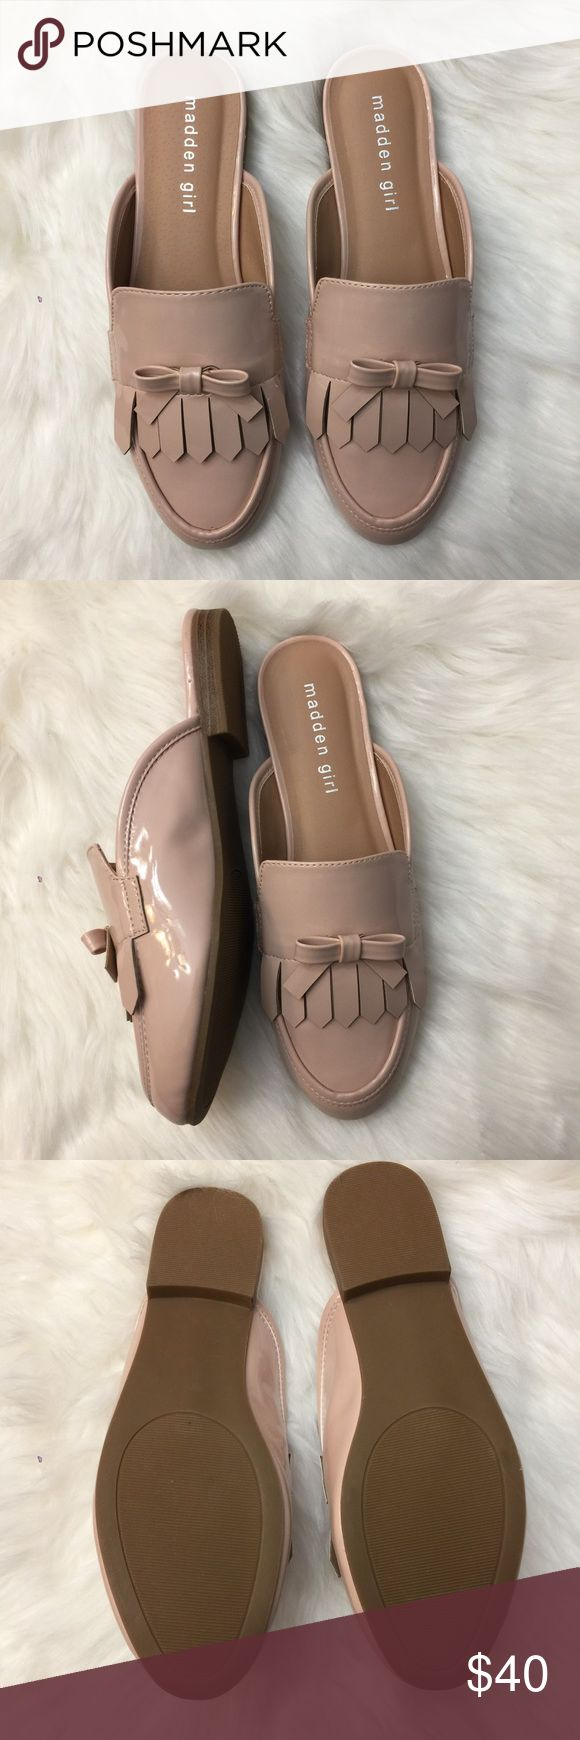 Steve Madden Girl Slip On Mules NEW Beautiful patent Mules in nude blush color Madden Girl Shoes Mules & Clogs